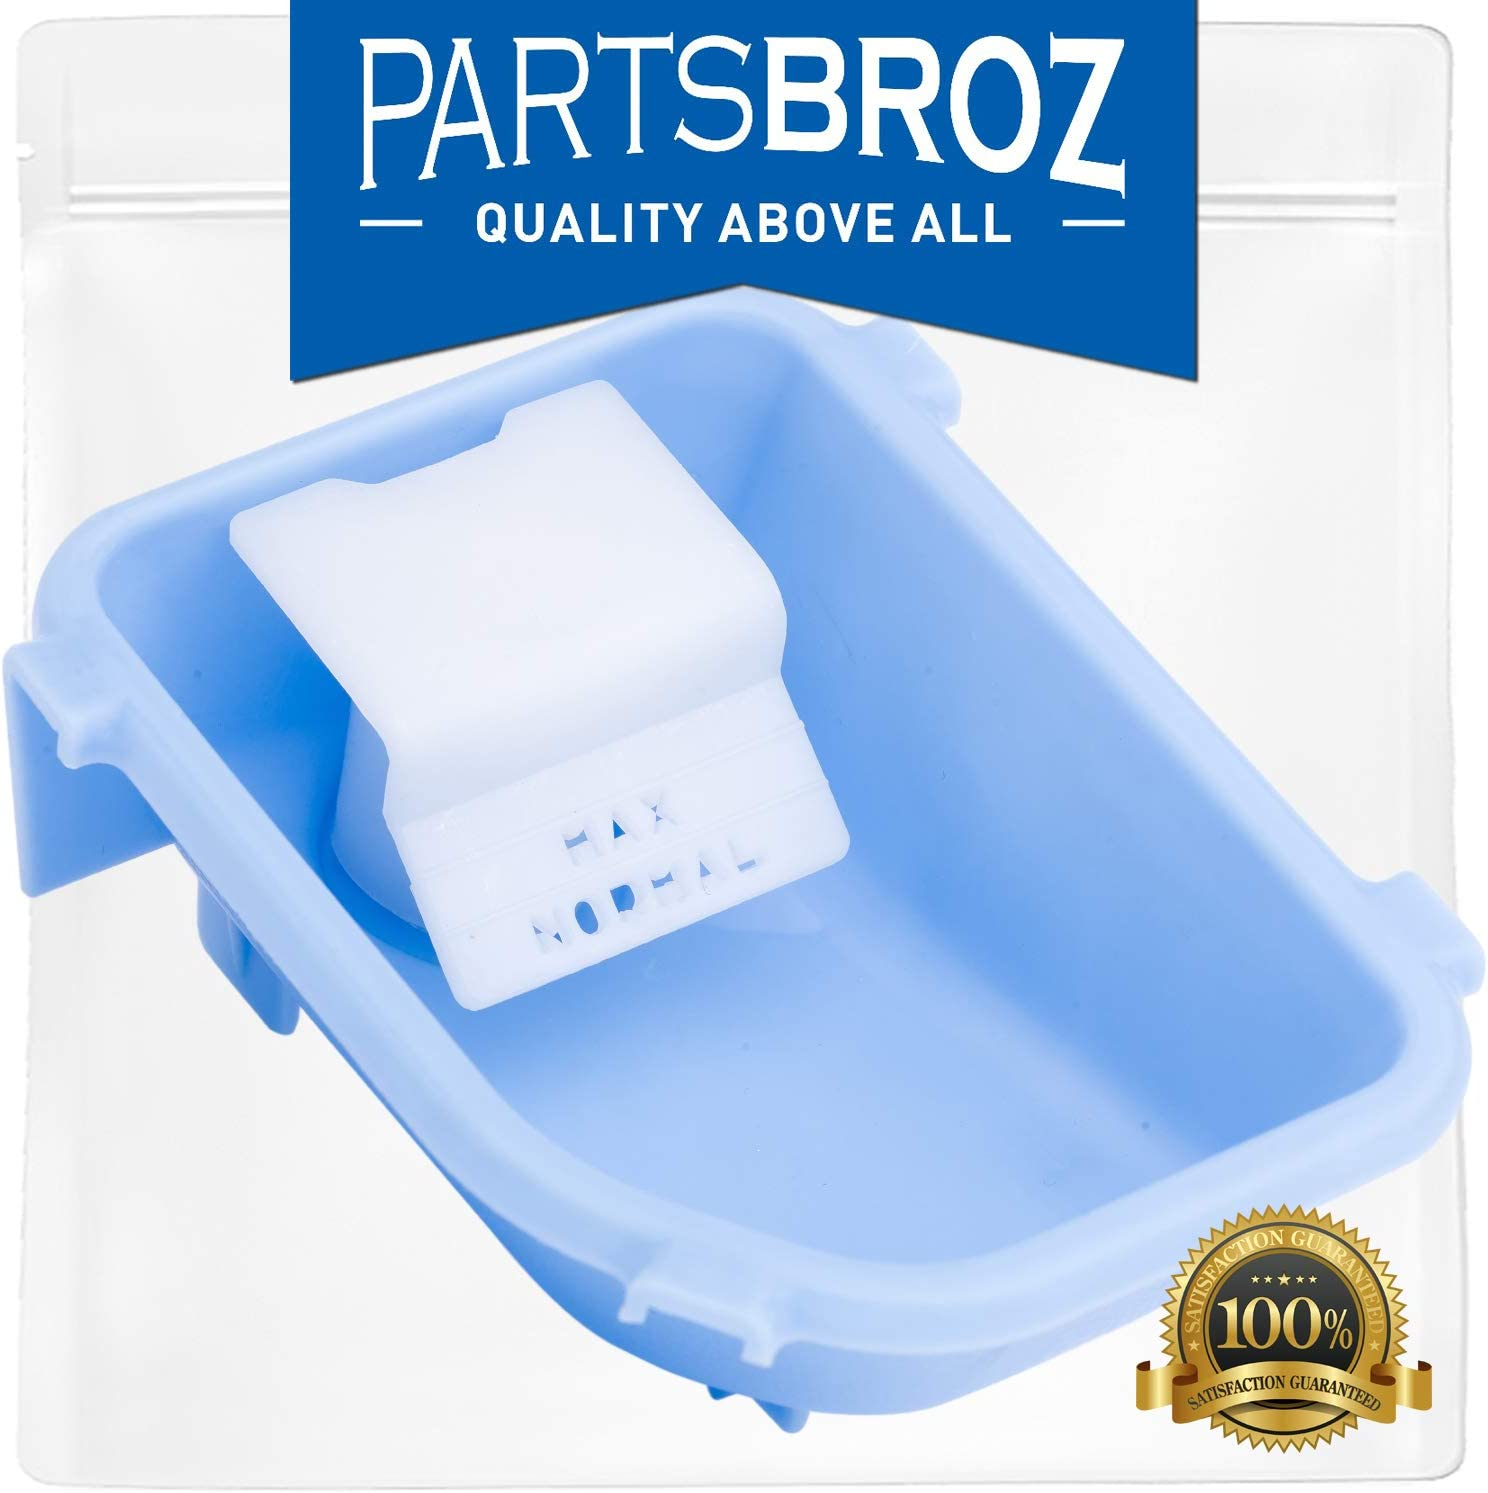 3891ER2003A Liquid Detergent Box Assembly for LG Washers by PartsBroz – Replaces Part Numbers AP4436613, 267454, 3890ER2003A, 3891ER2003B, 3891ER2003D, AH3522644, EA3522644, PS3522644